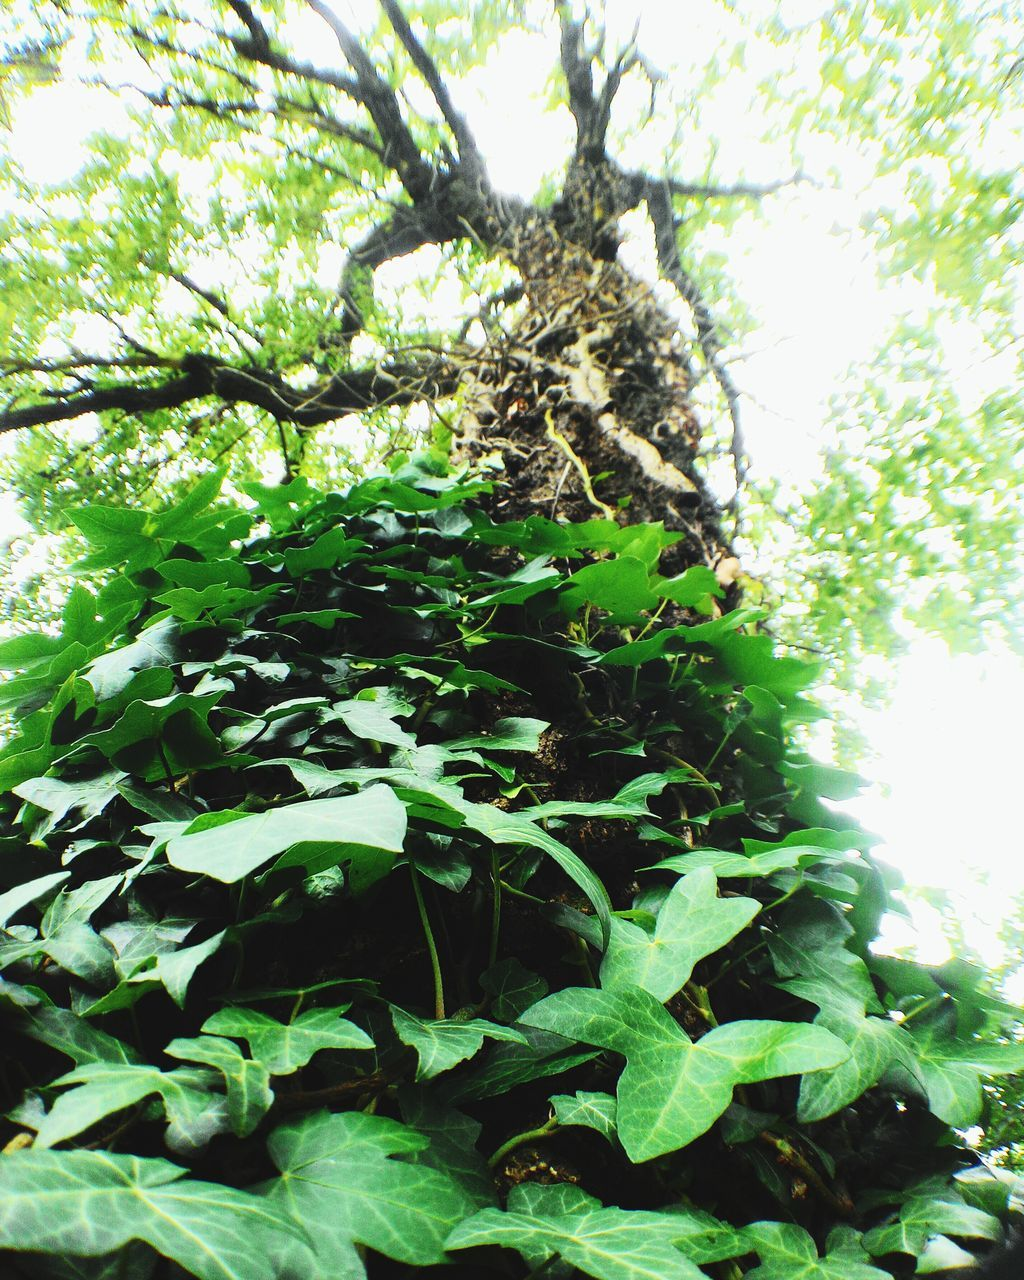 growth, nature, tree, green color, no people, plant, leaf, day, low angle view, outdoors, branch, beauty in nature, close-up, fragility, freshness